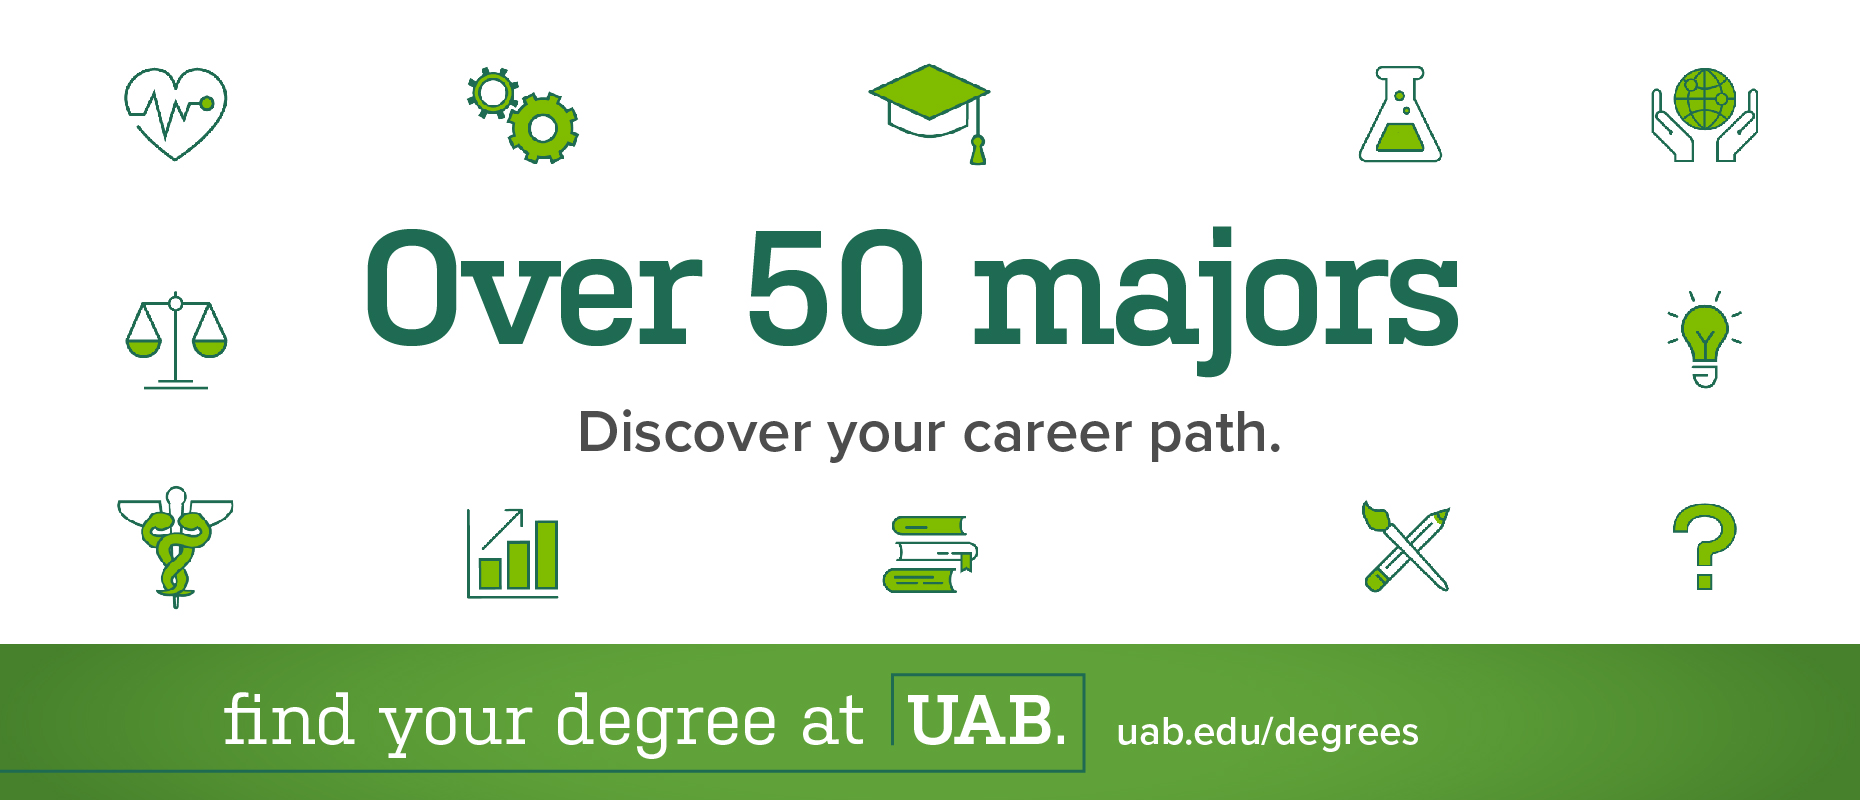 Over 50 majors: Discover your career path. Find your degree at UAB.